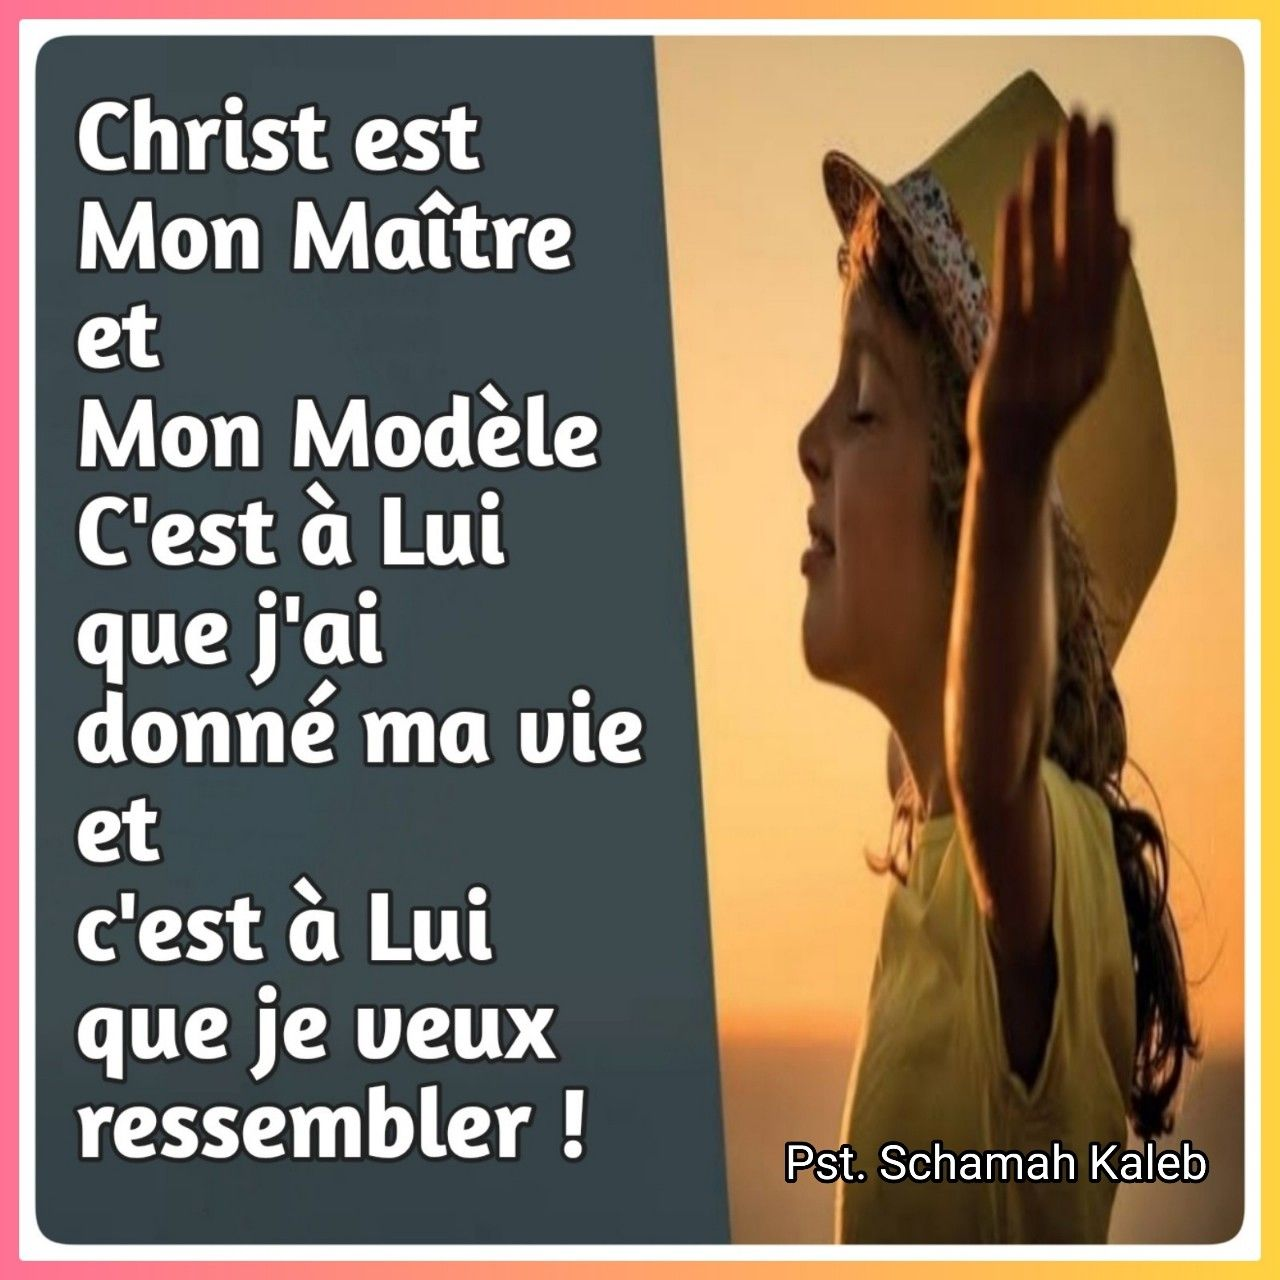 Pin By Schama Kaleb On Christ Est Ma Vie In 2020 Christ Memes Ecard Meme